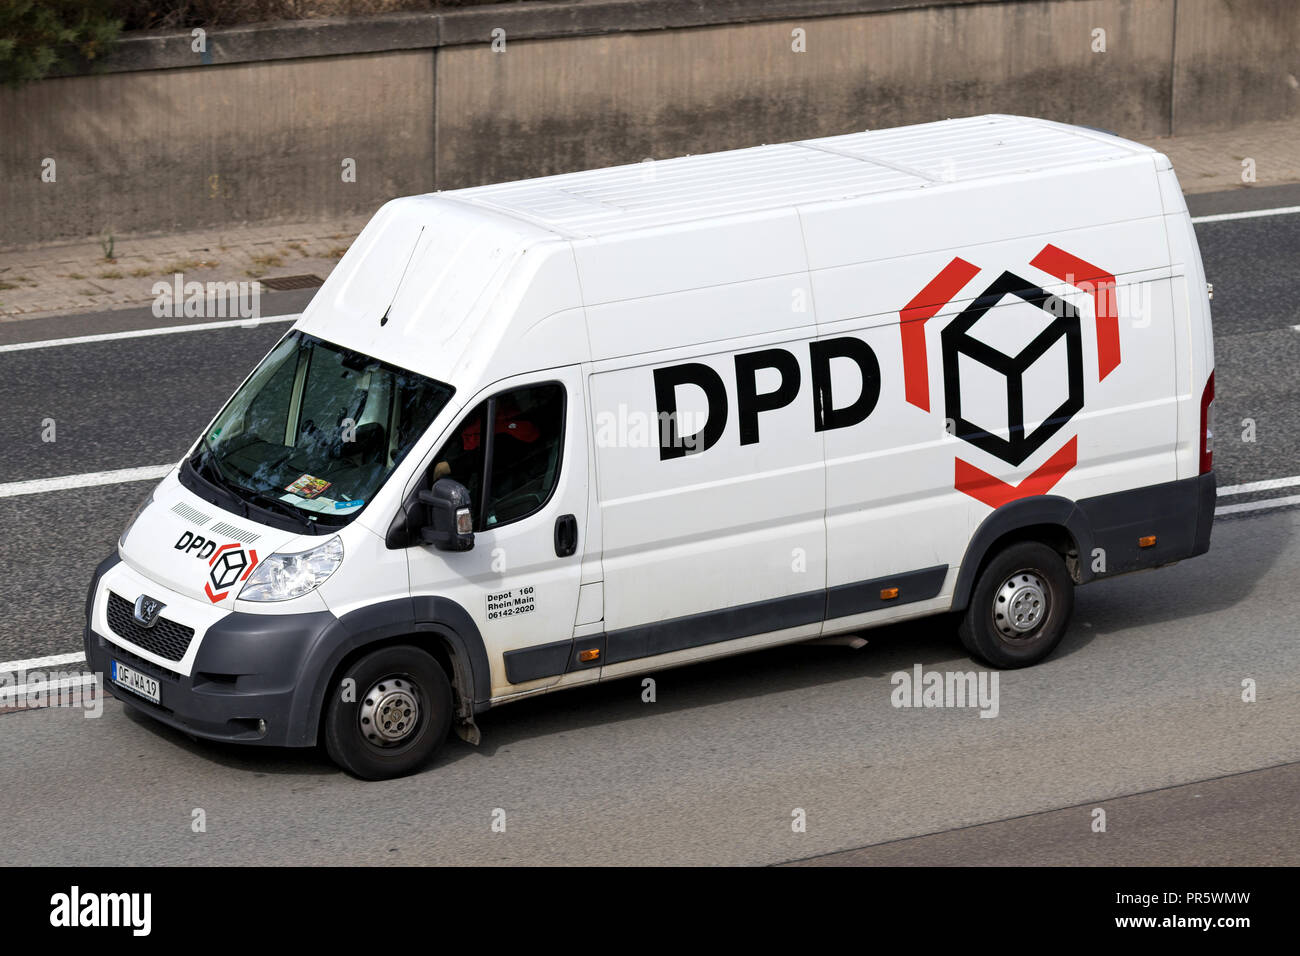 aa41c964088a94 DPD delivery van on motorway. DPDgroup is the international parcel delivery  network of French state